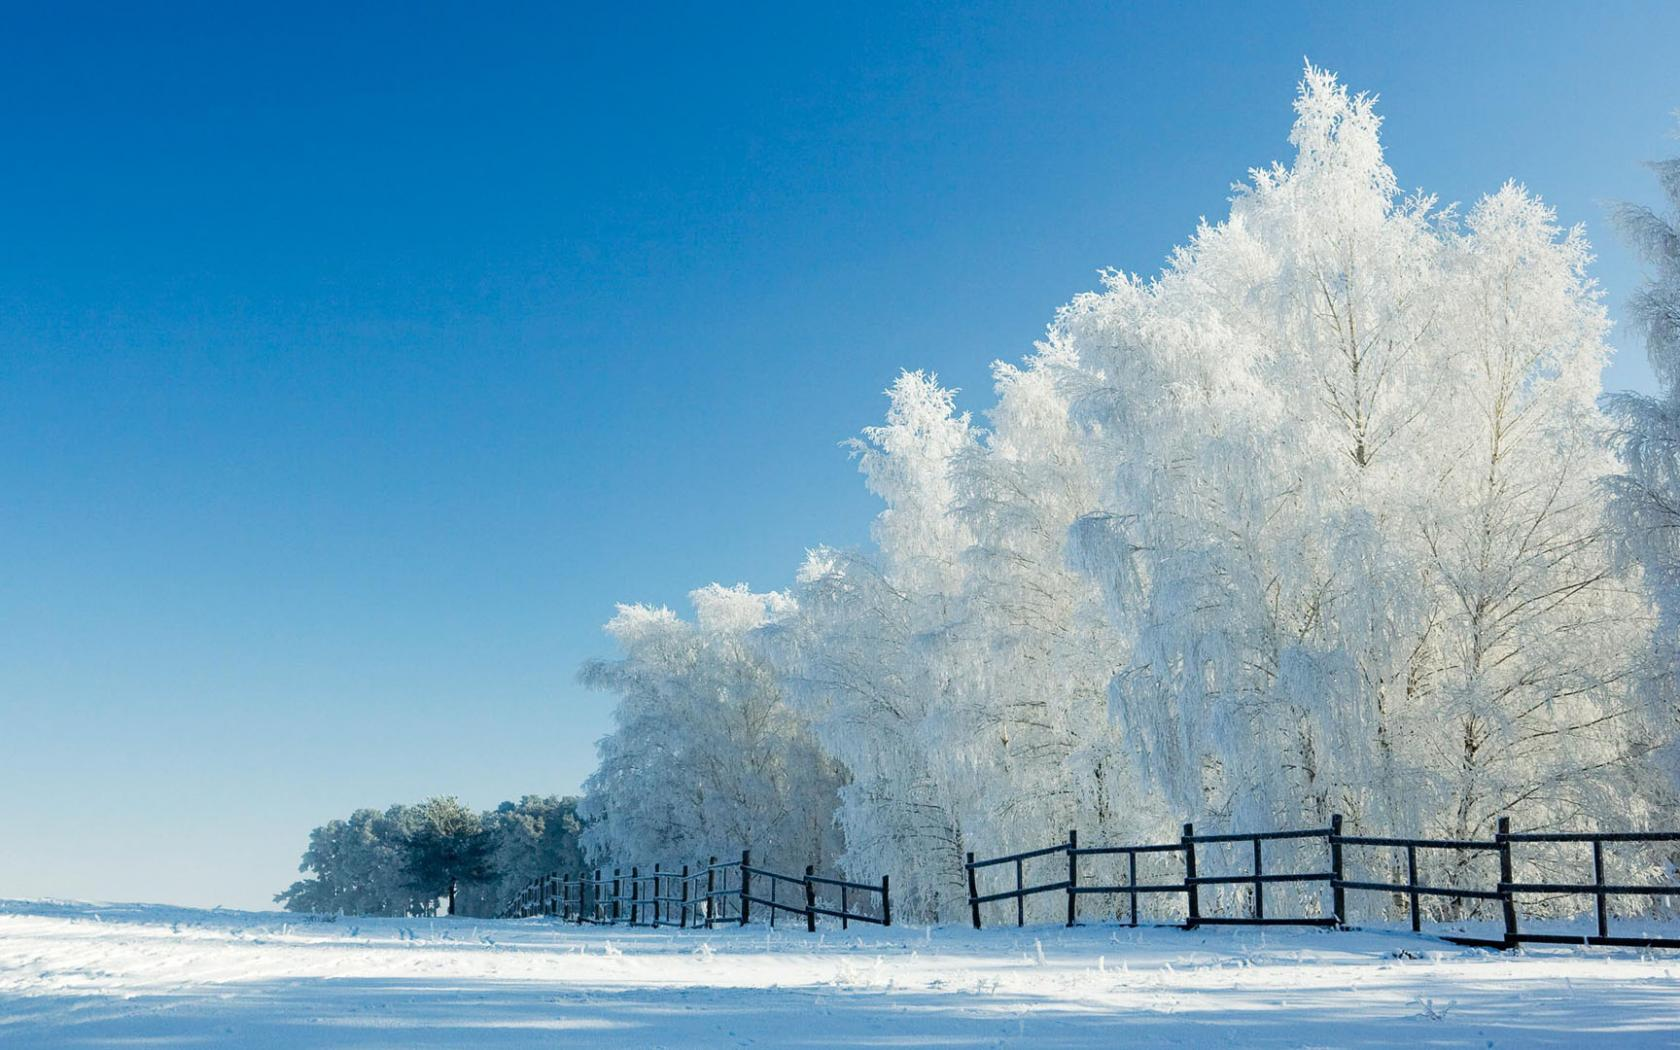 Snow Wallpaper Widescreen 8701 Hd Wallpapers in Nature   Imagescicom 1680x1050